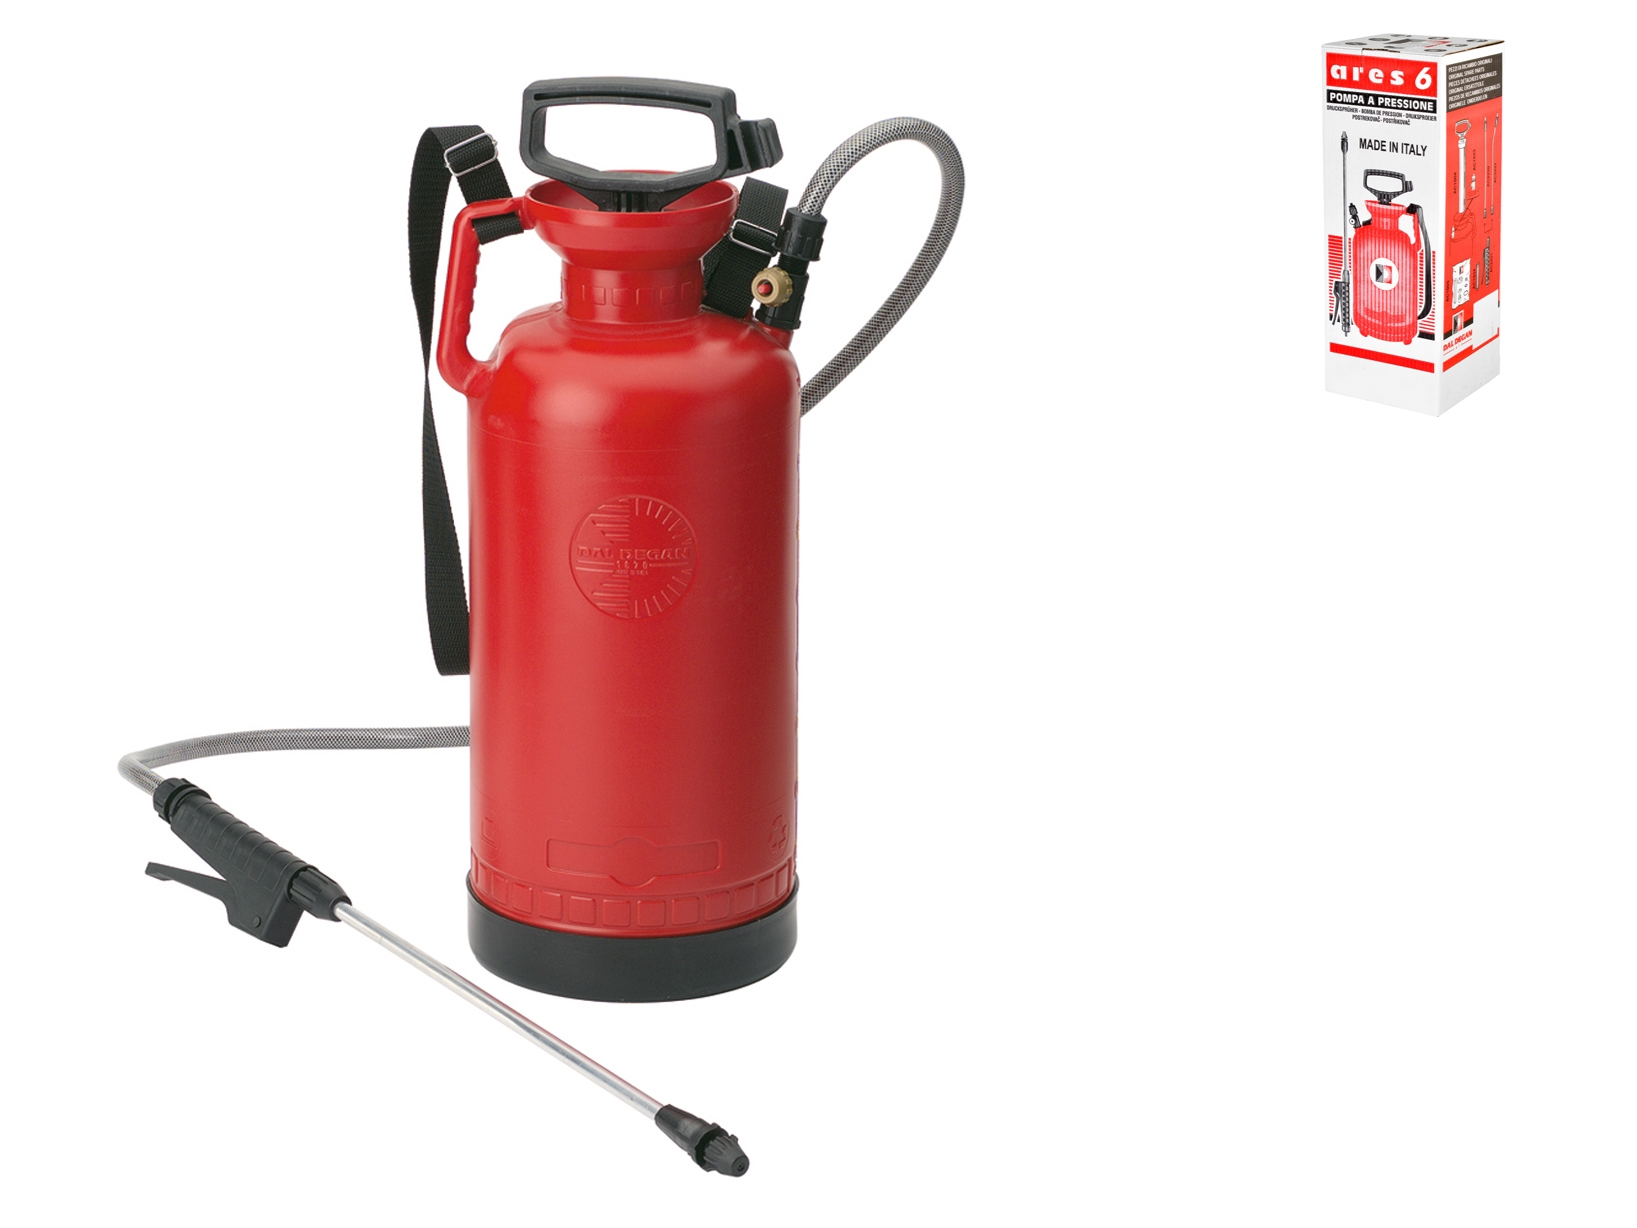 Pompa A Spalla Ares Rosso 6lt